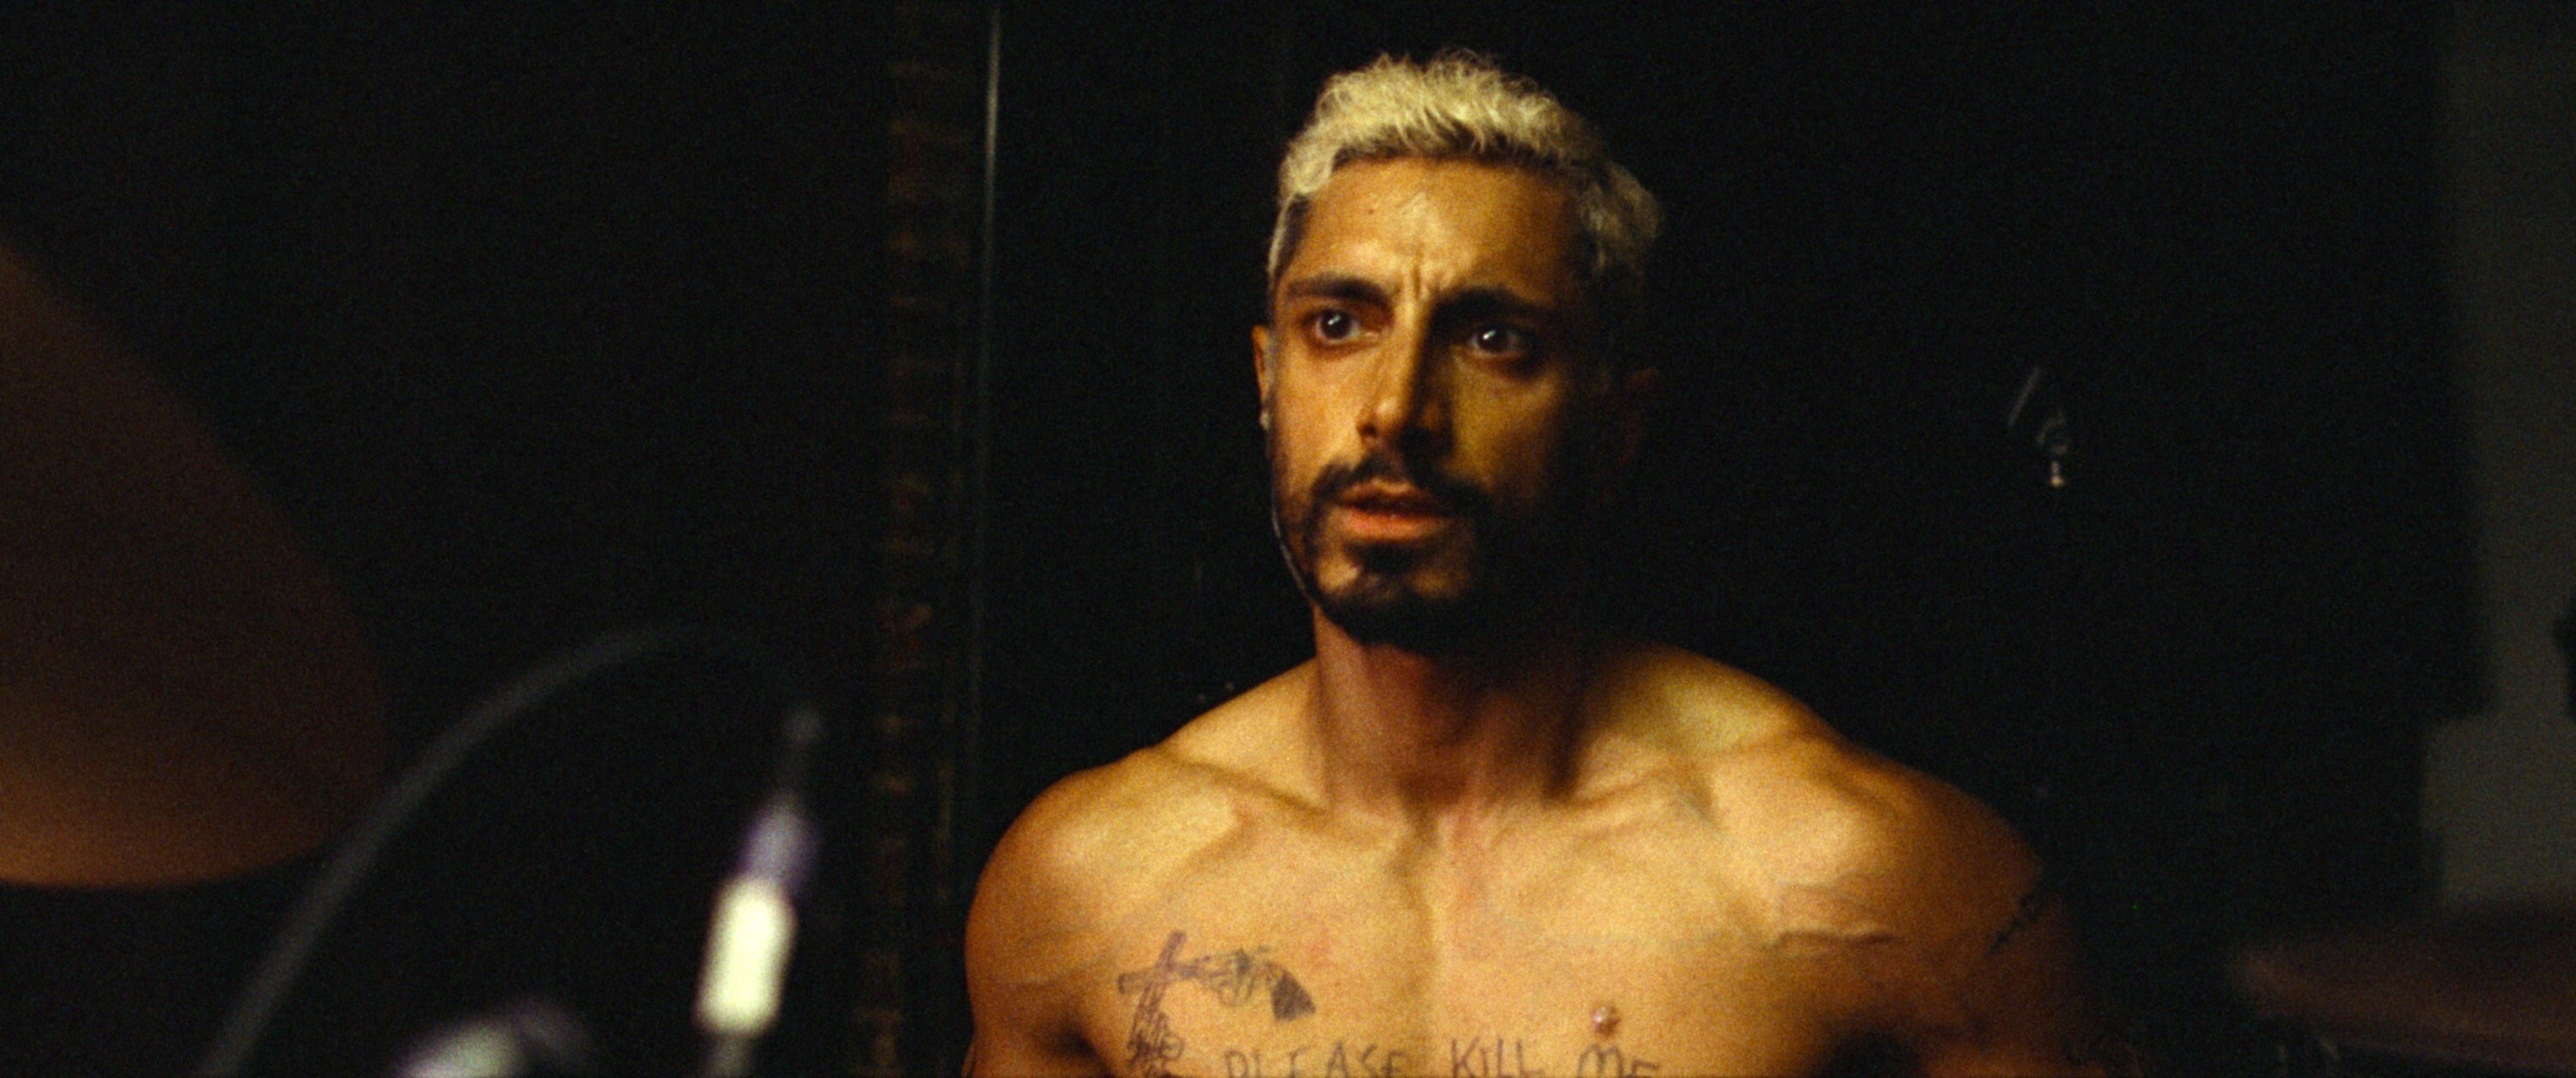 Riz Ahmed plays the drums shirtless